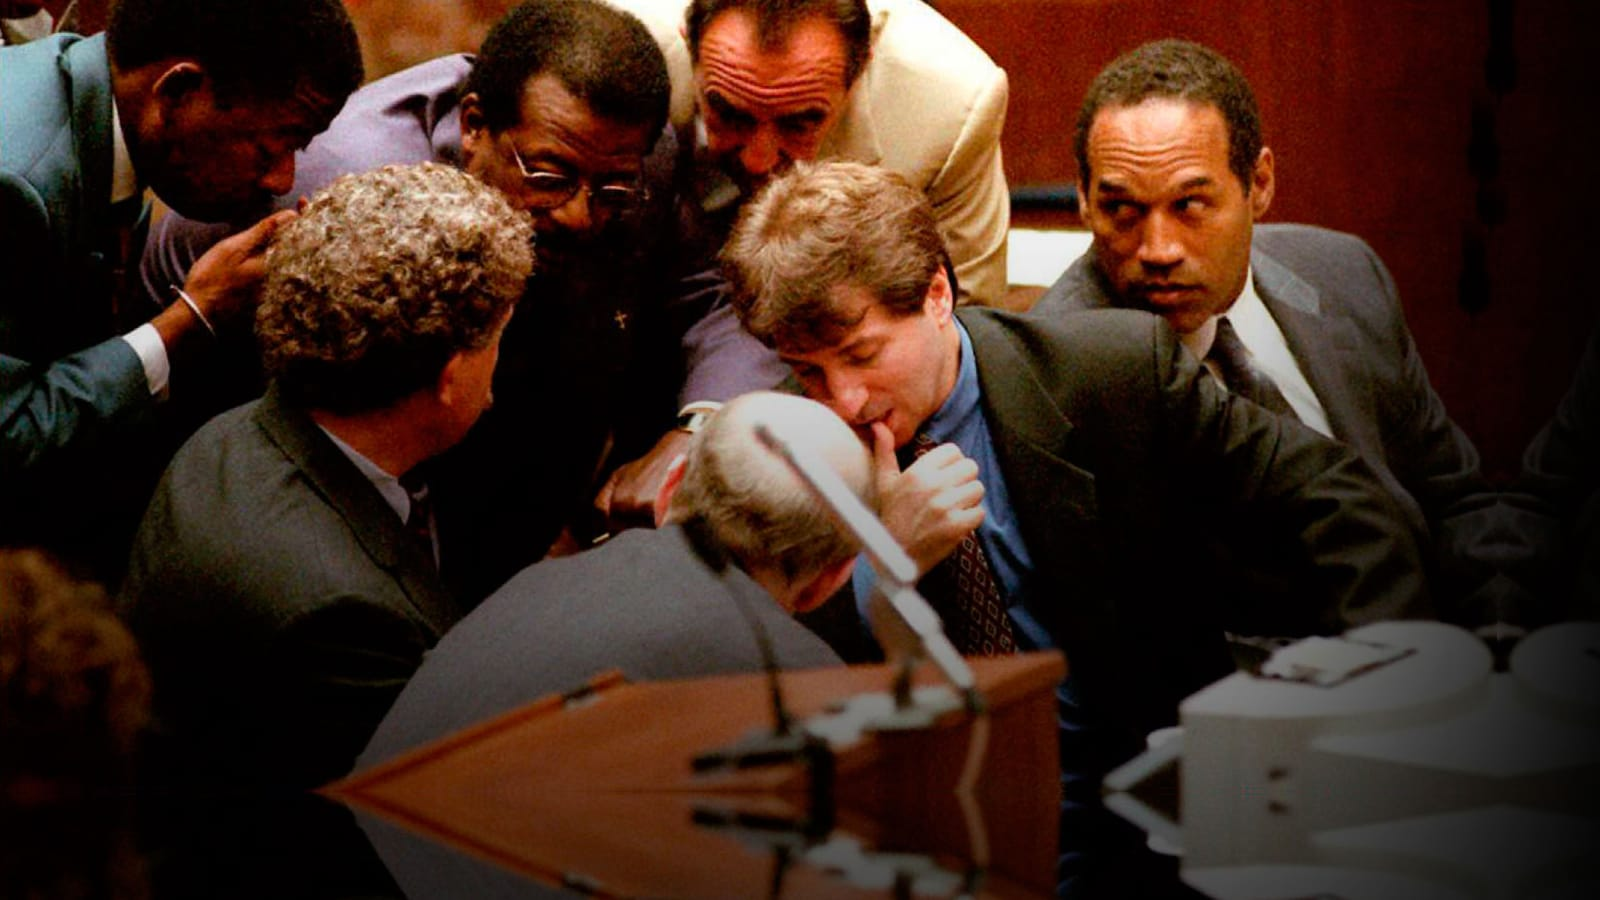 Get a Deeper Look Into The People v. O.J. Simpson